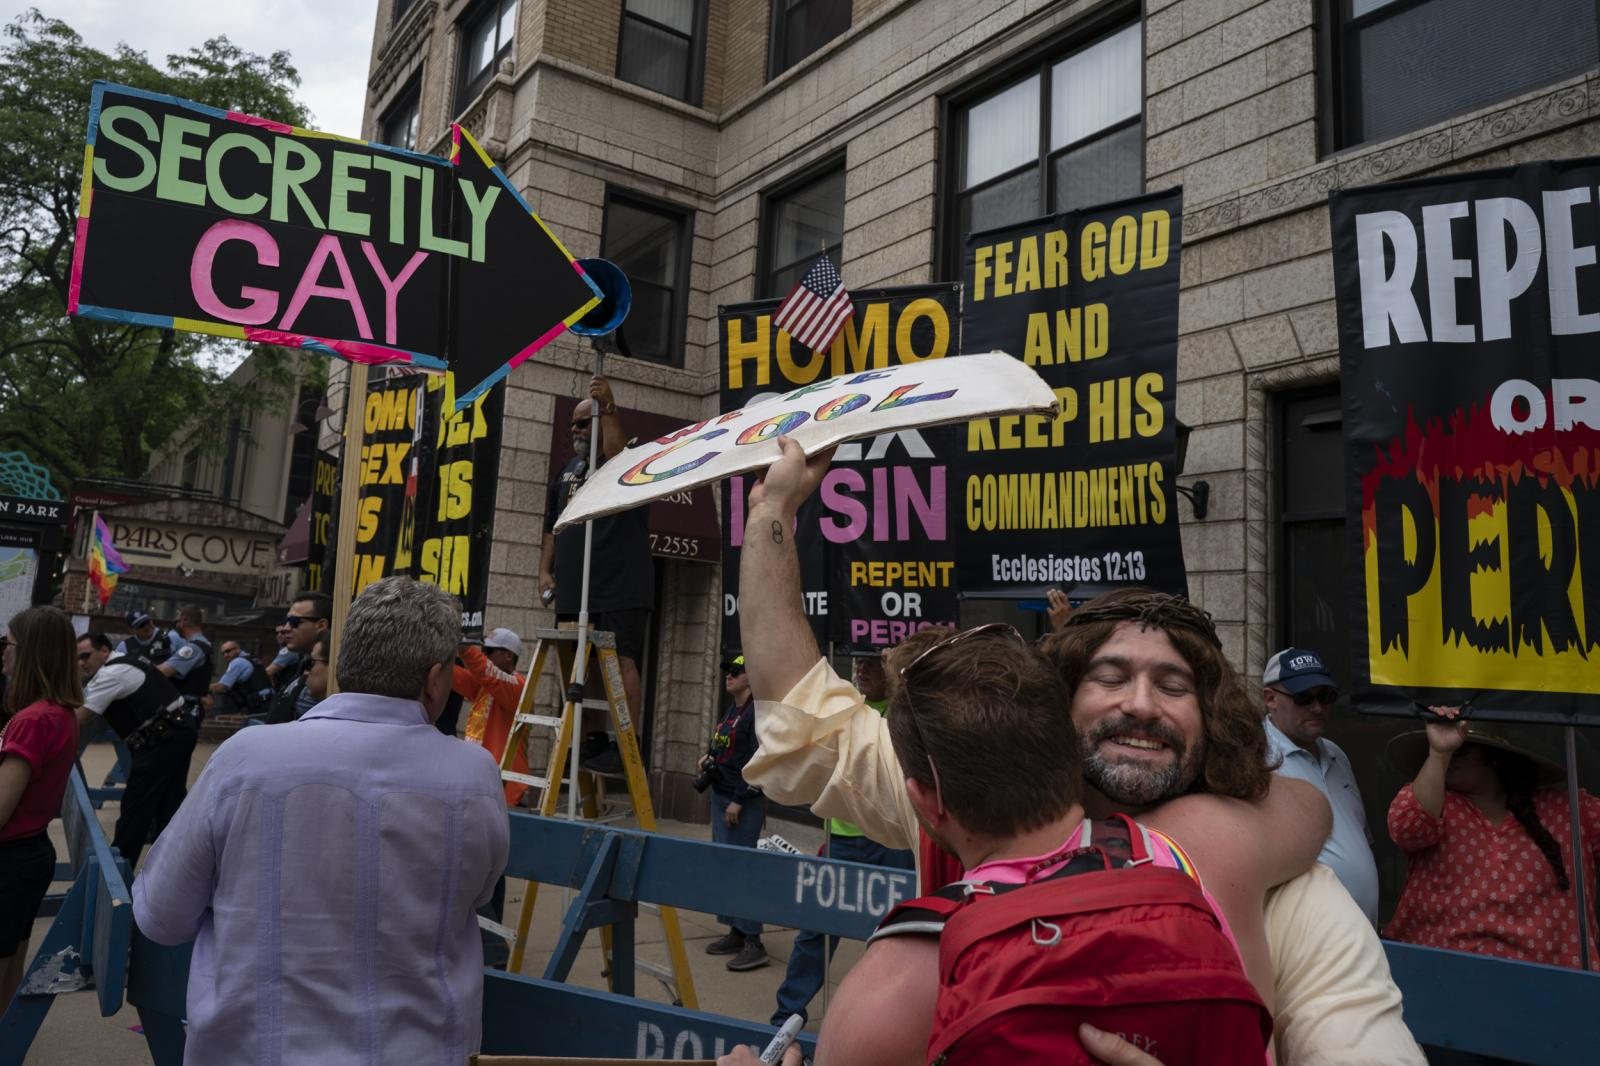 "Scott Whitehair, dressed as Jesus Christ, gives out free hugs to counter-protest a Christian hate group during Chicago's 50th Pride Parade on June 30, 2019. ""I showed up because it's a chance to make people laugh and smile when they walk by instead of hearing these terrible stuff,"" Whitehair said."